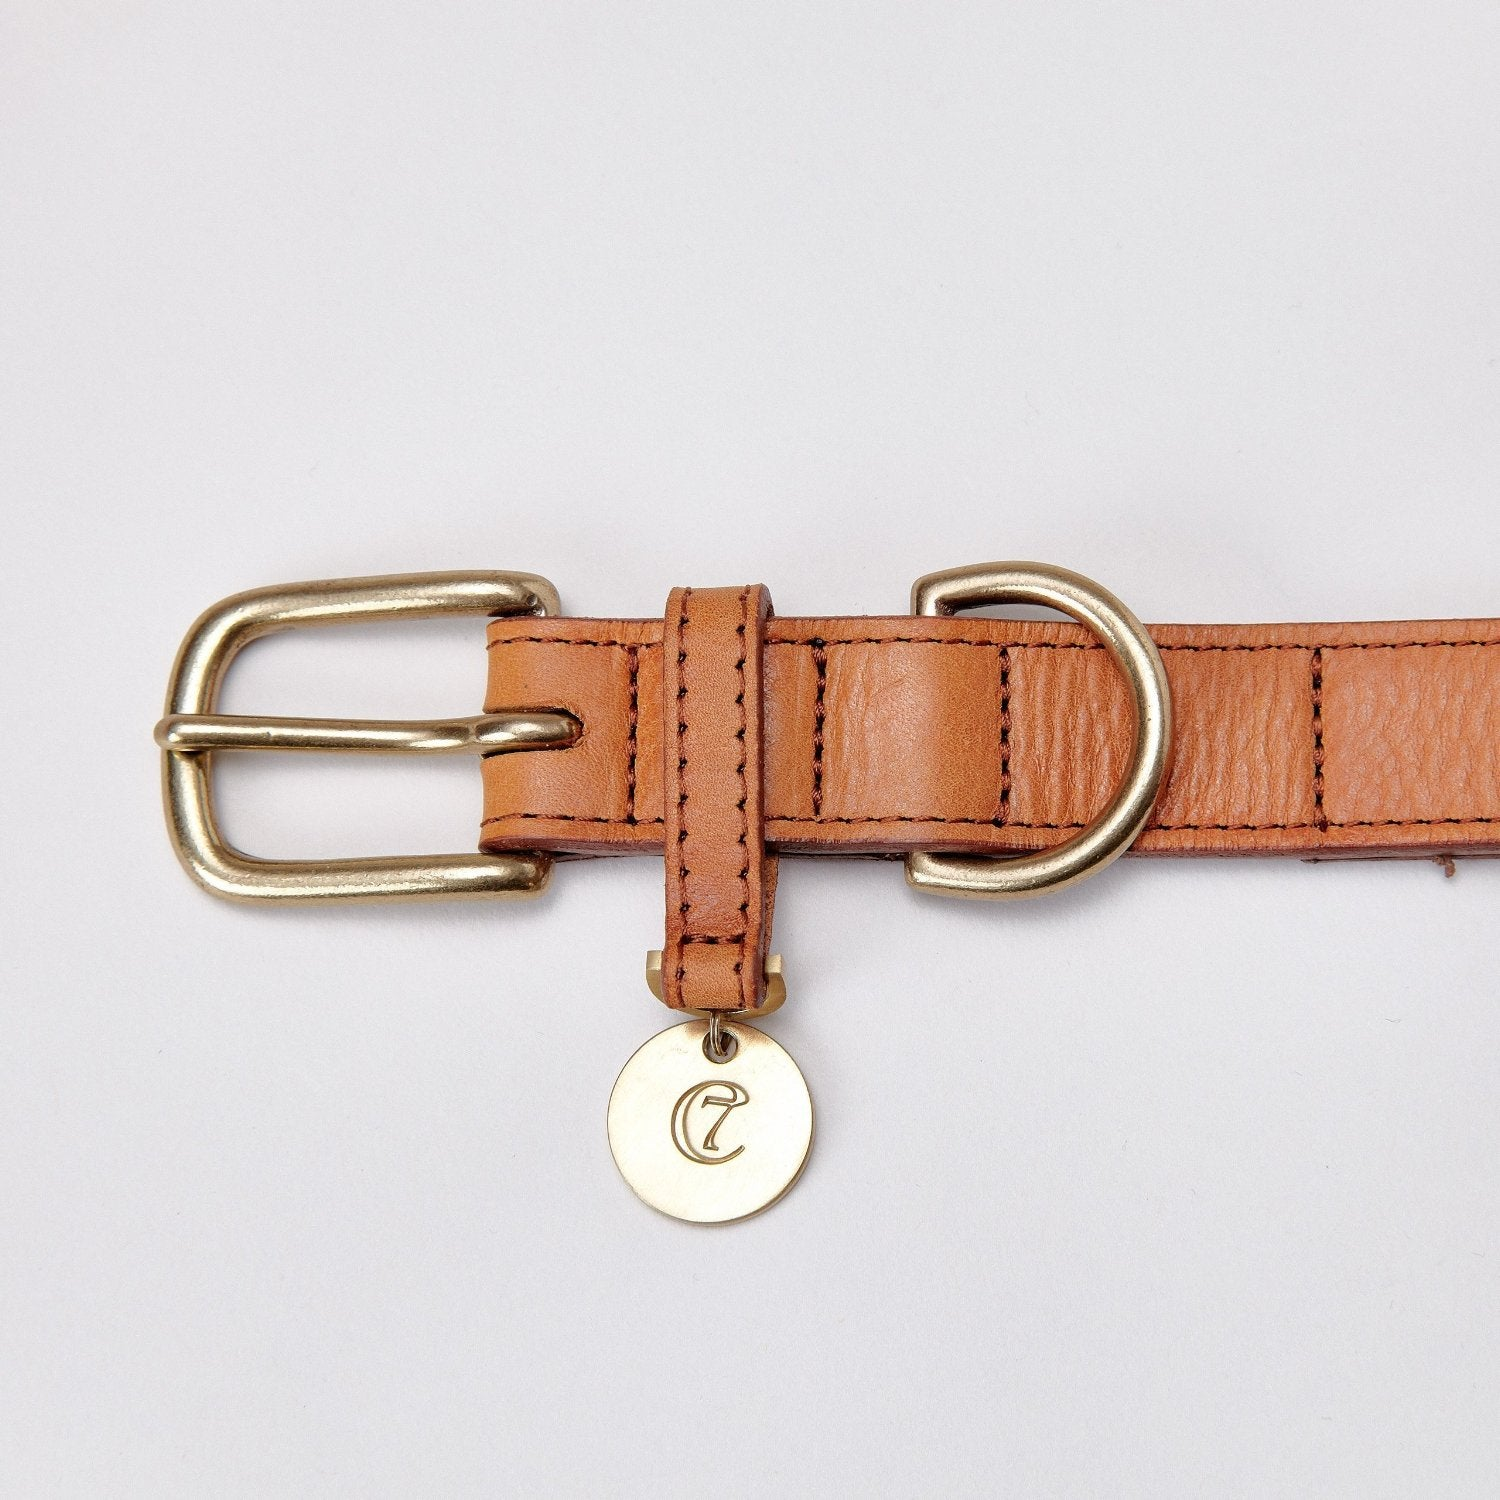 Cloud7 leather dog collar